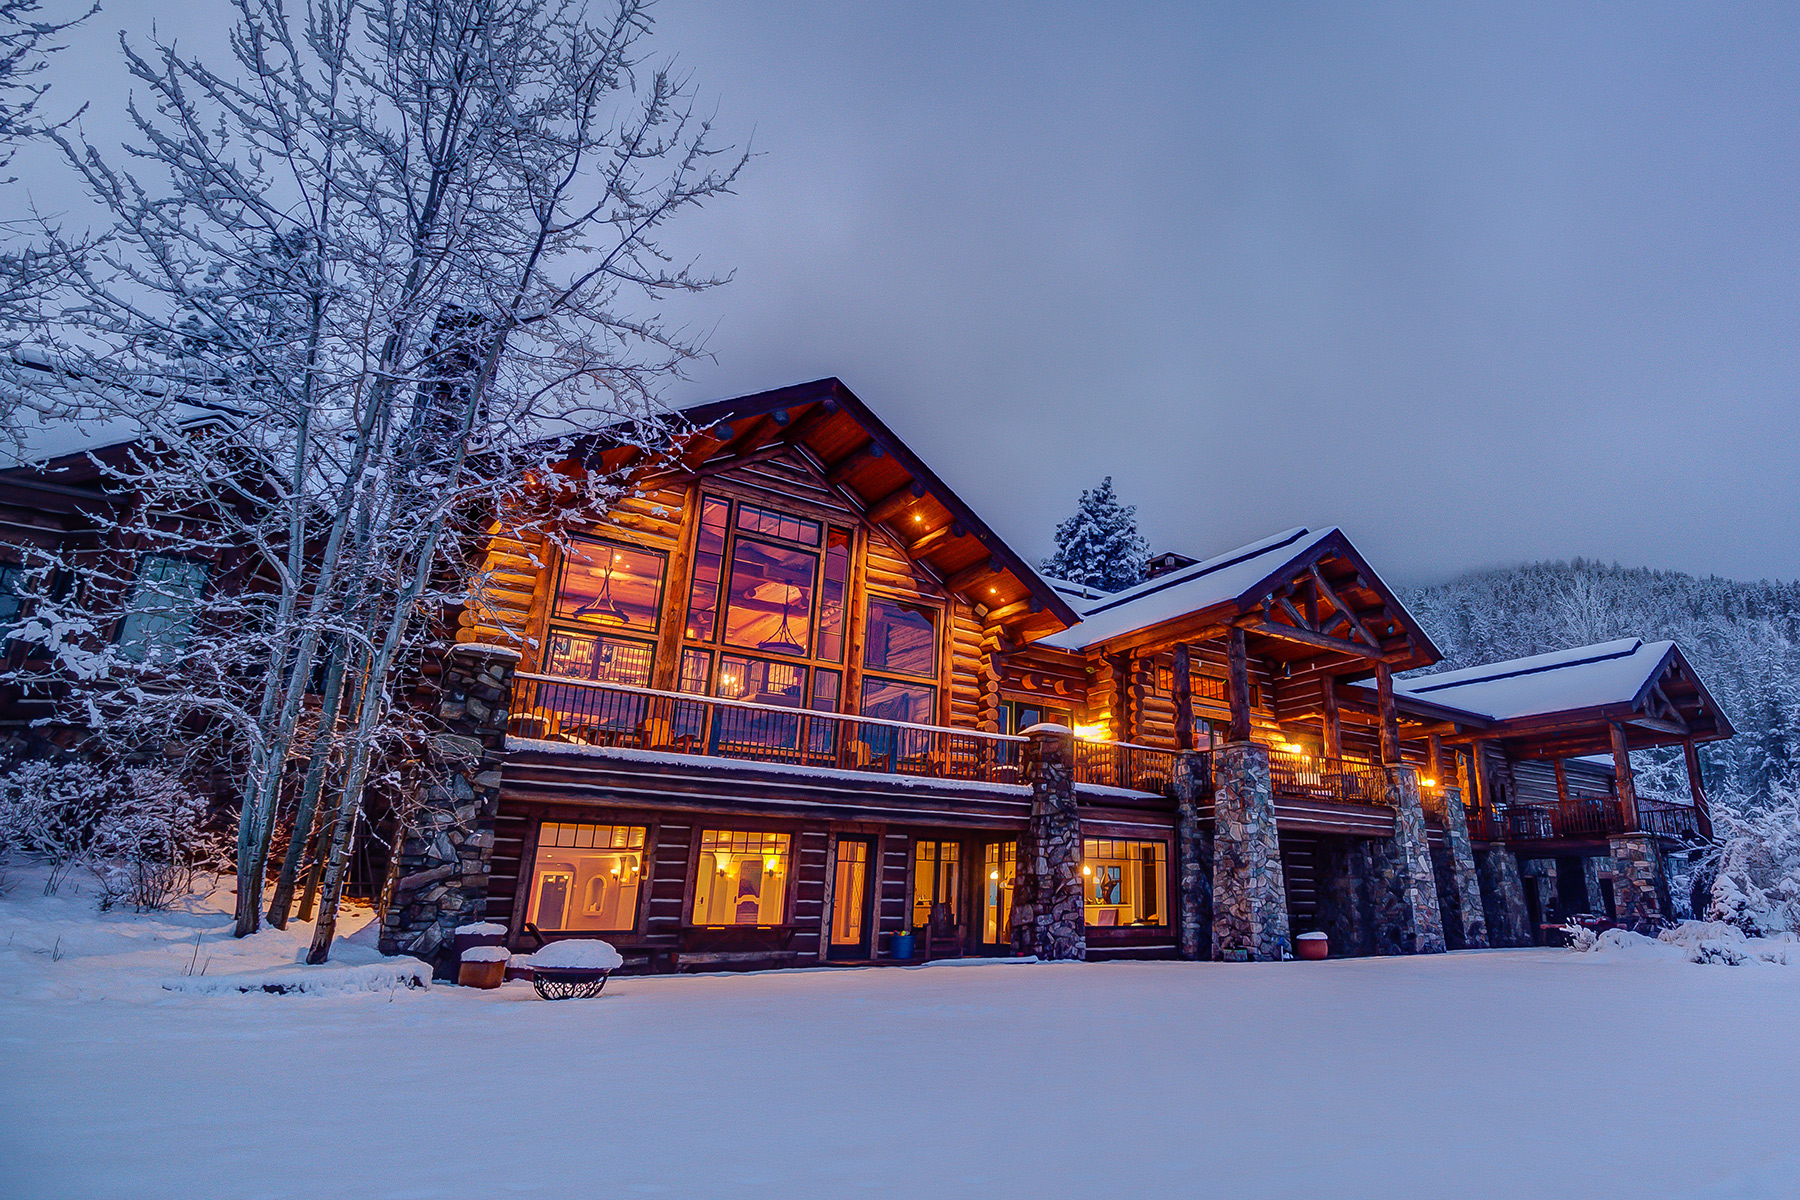 Single Family Home for Sale at Exquisite Log Home 510 Indian Prairie Loop Victor, Montana 59875 United States